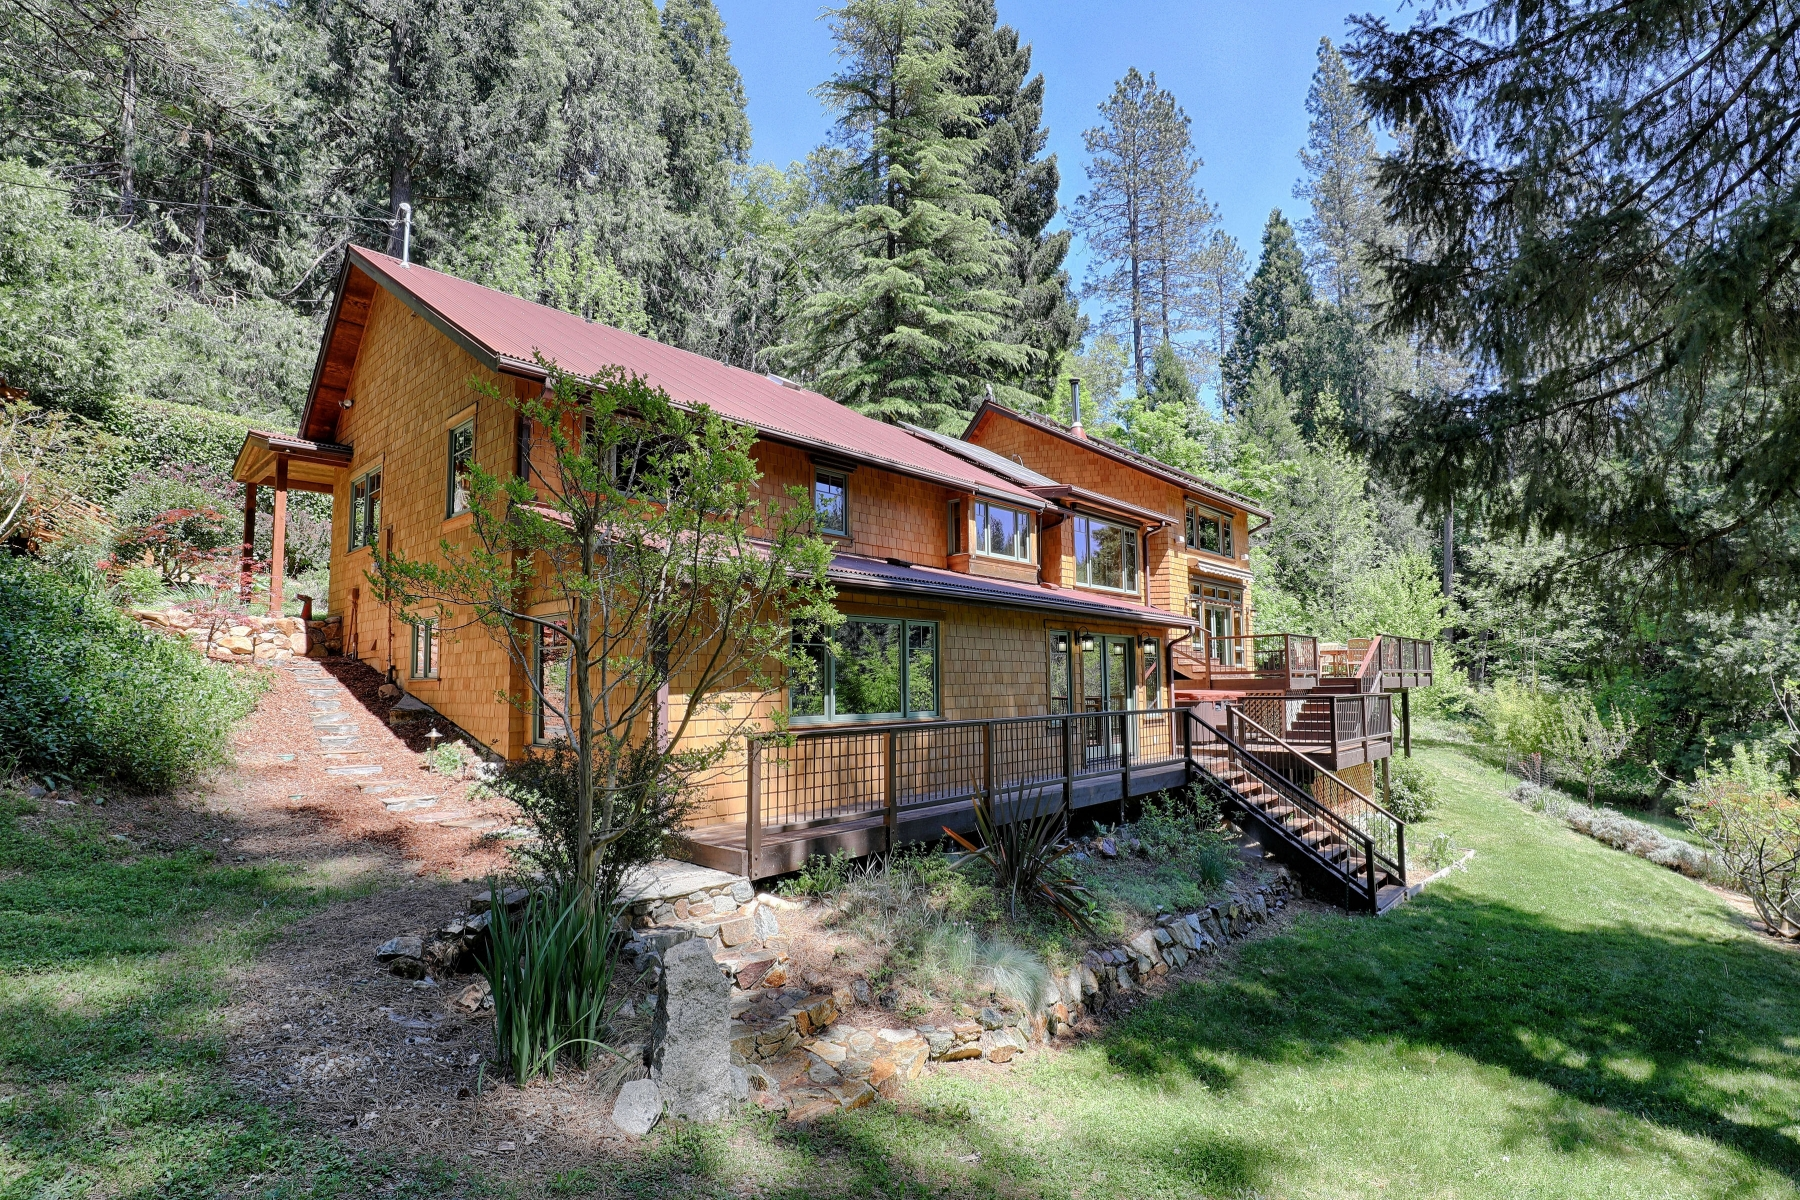 Single Family Home for Sale at 353 Old Downieville Hwy, Nevada City, CA 353 Old Downieville Hwy Nevada City, California 95959 United States